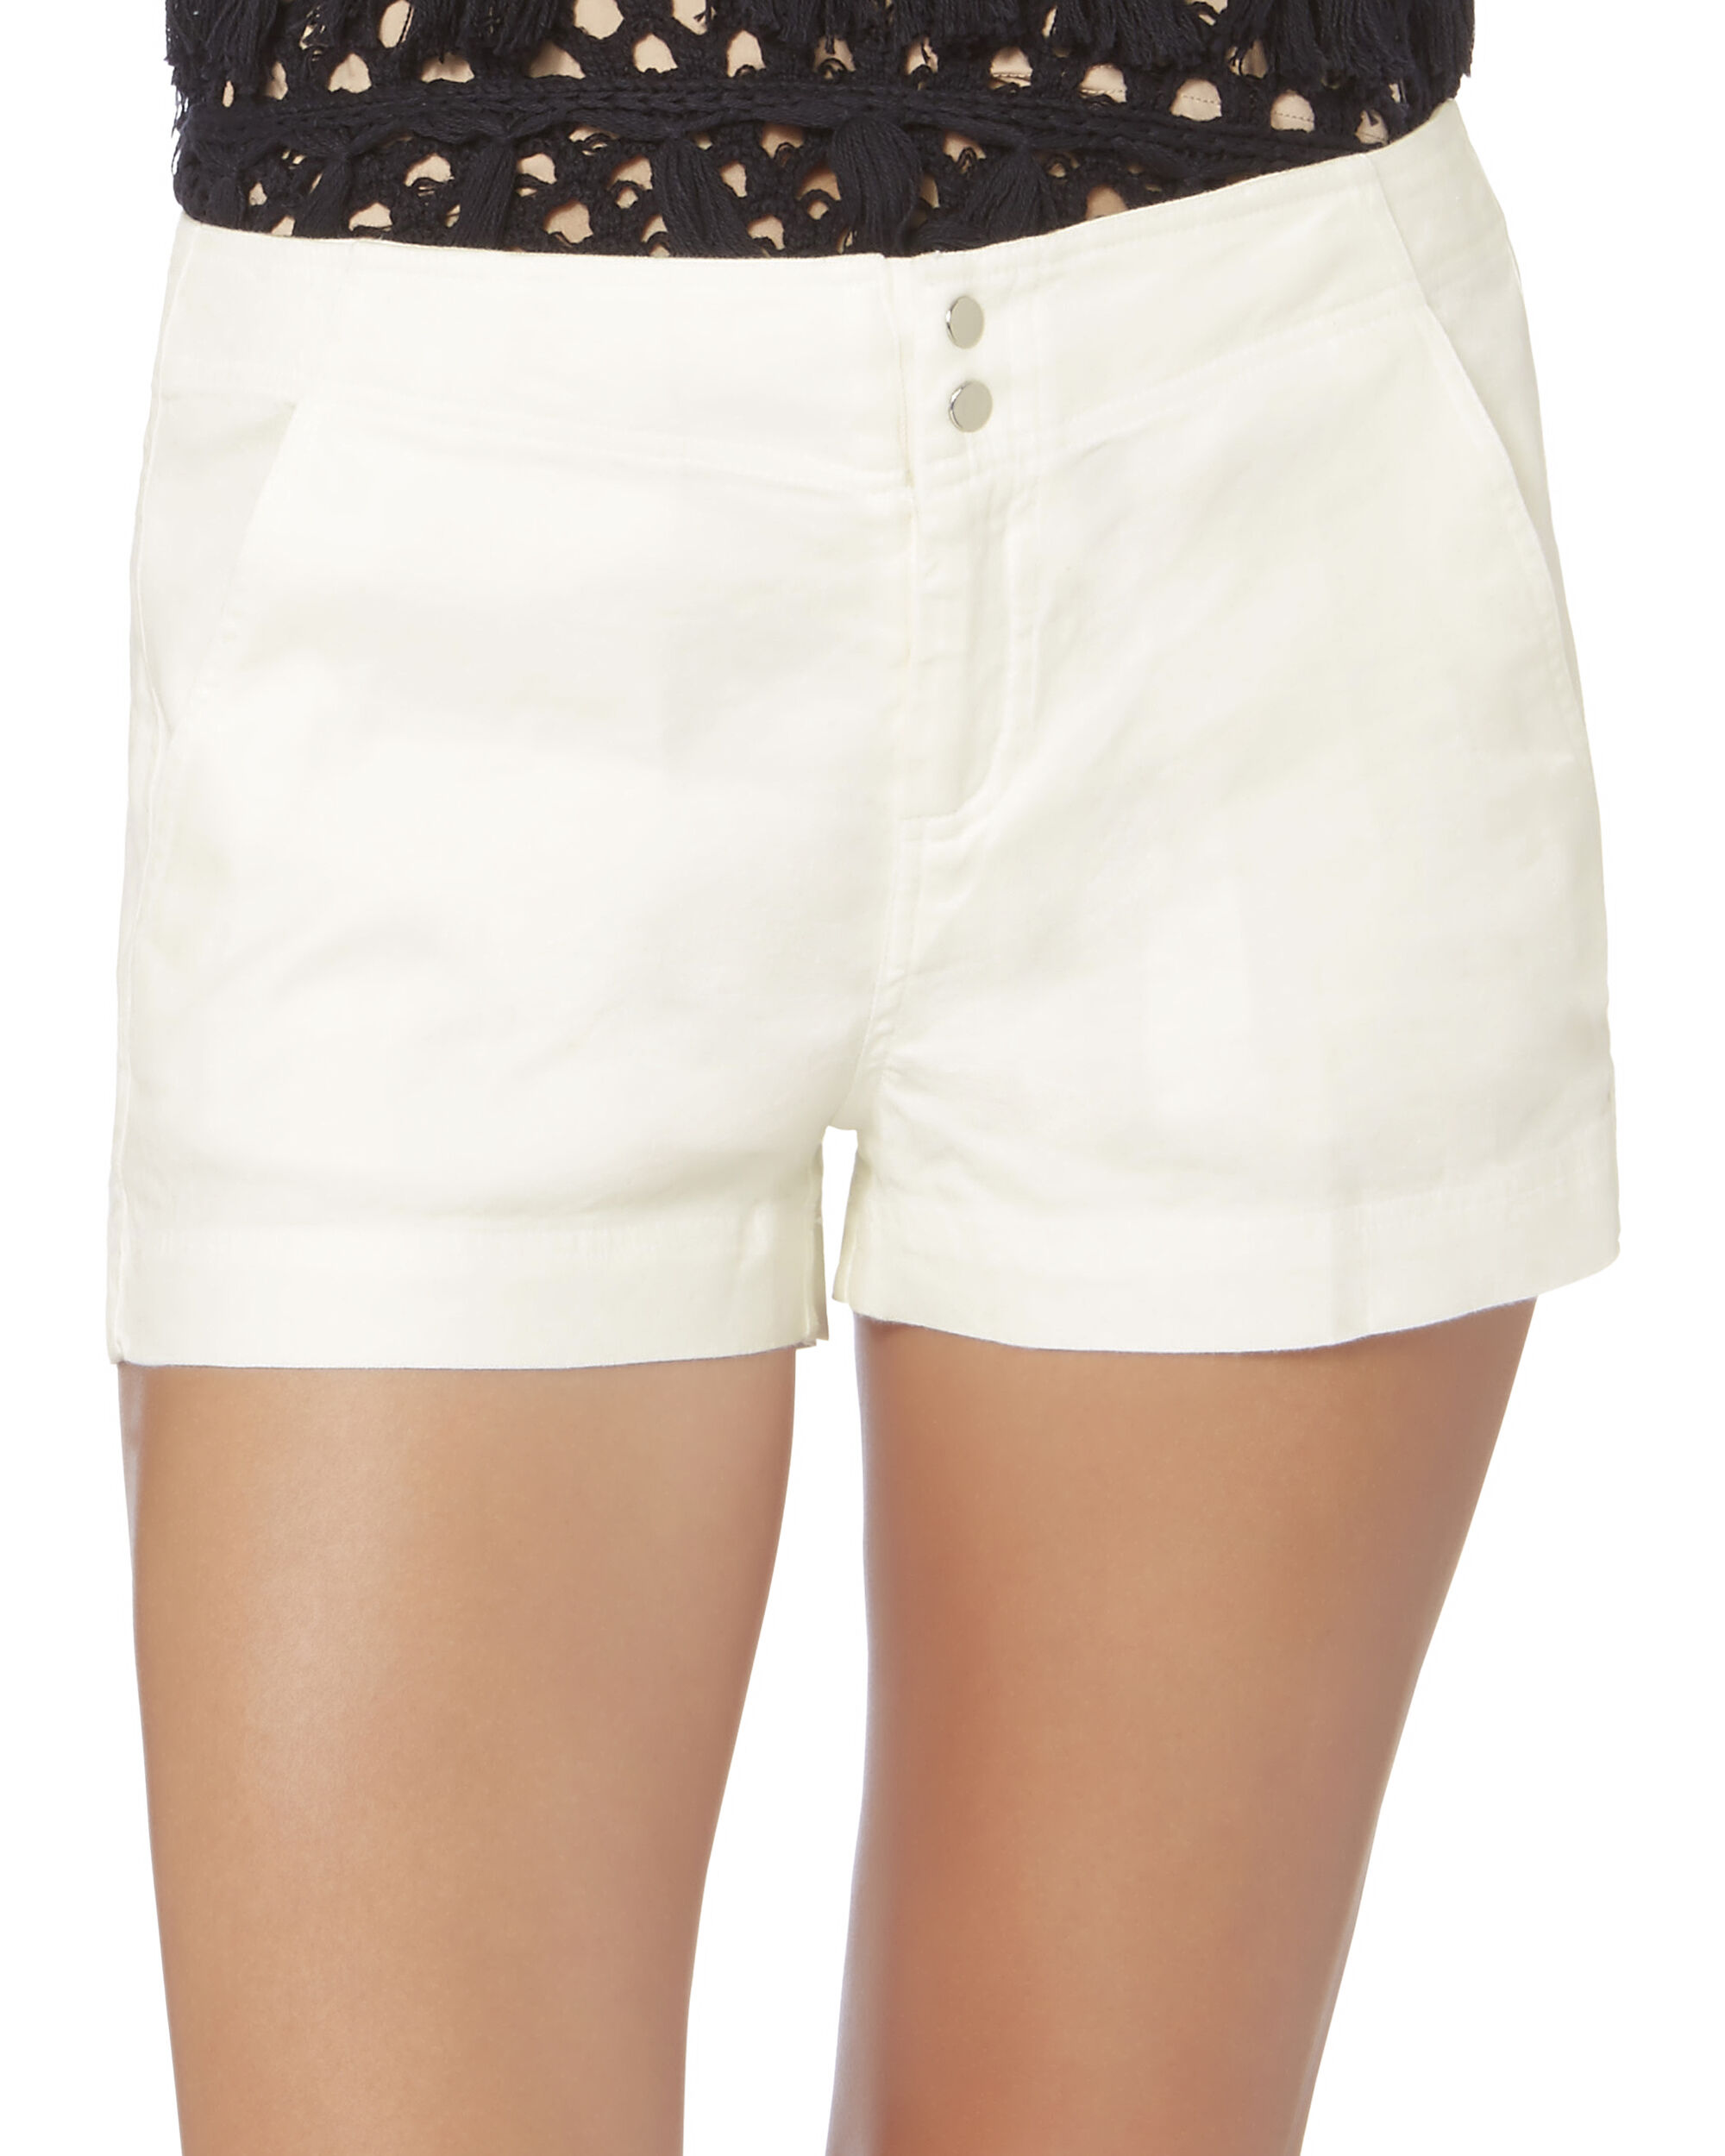 Essex Tailored Ivory Shorts, IVORY, hi-res